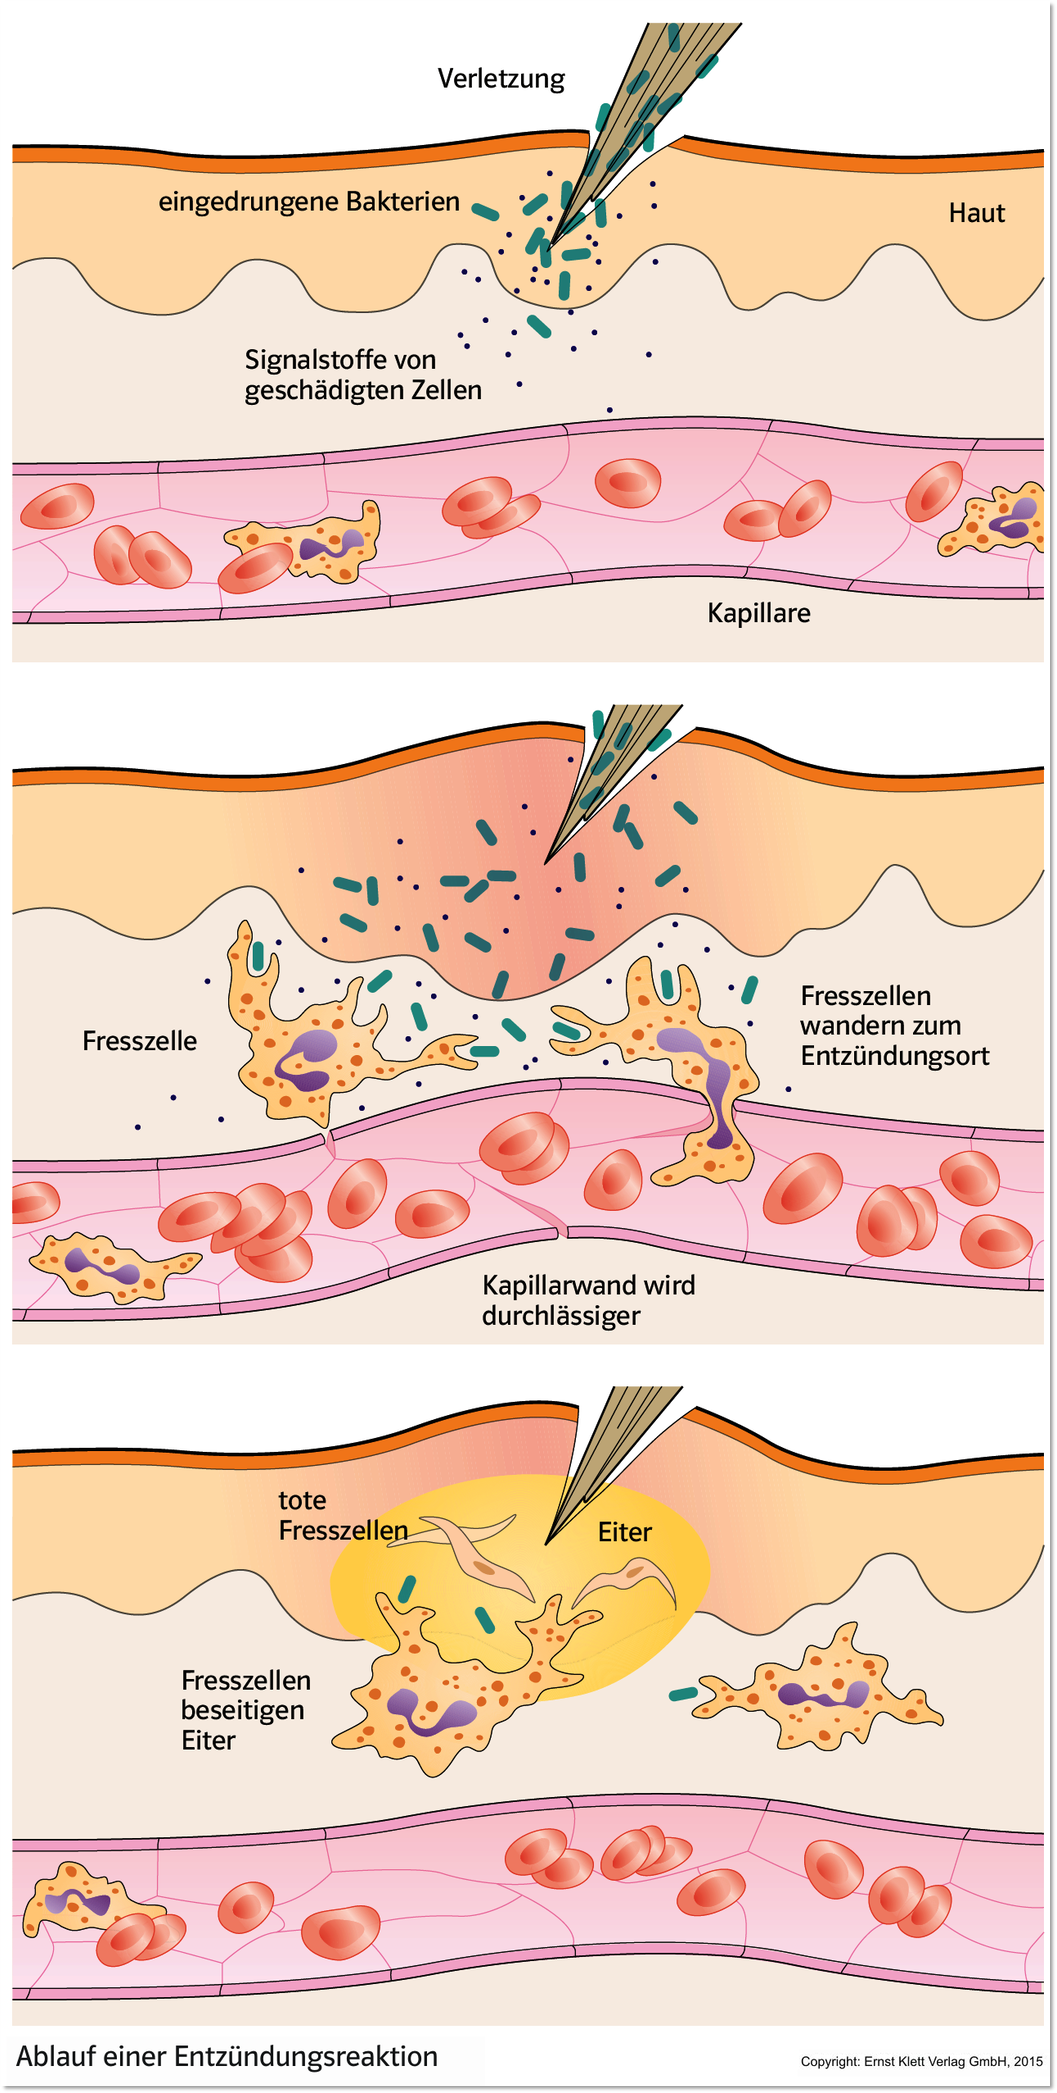 Tendonitis Tendinosis Difference Matters Recovery in addition Full further Bifidobacterium Bifidum Rosell71 Reduces Colds In New Study furthermore Stock Illustration Phagocytosis Human Immune System Vector Image79205517 moreover 384. on immune response